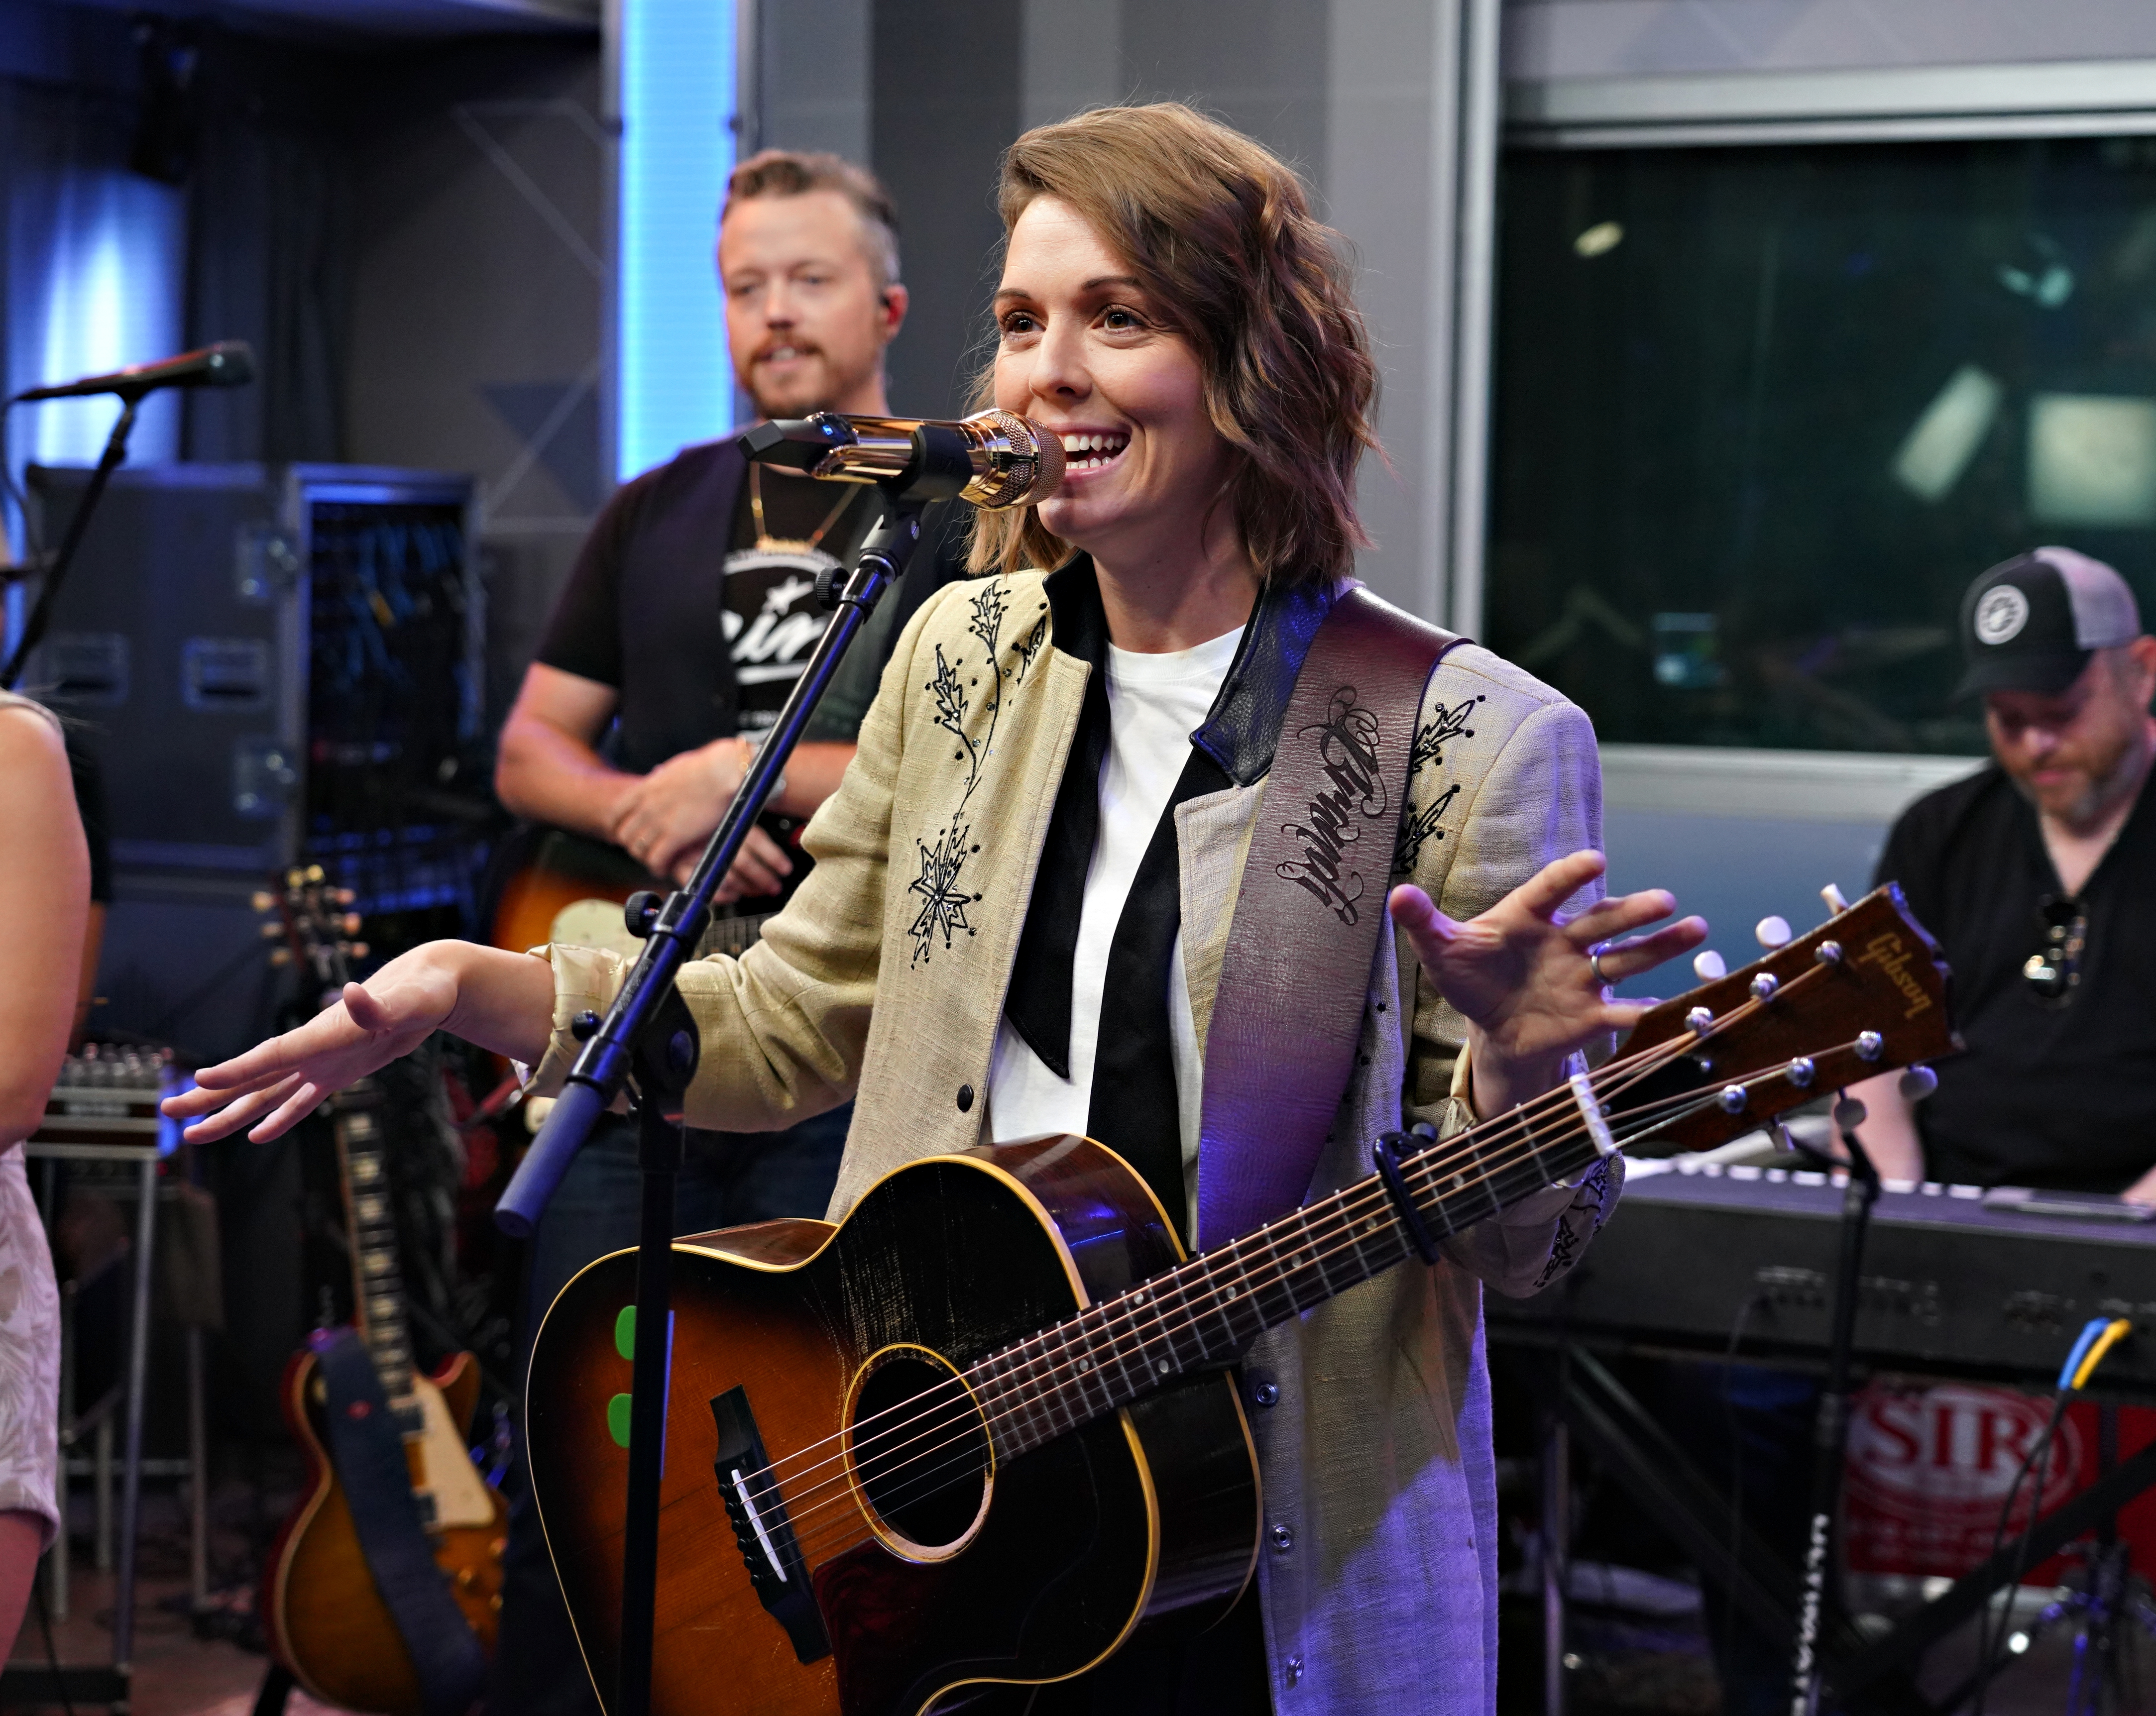 The Highwomen with Brandi Carlile on the microphone perform live in a New York City studio.